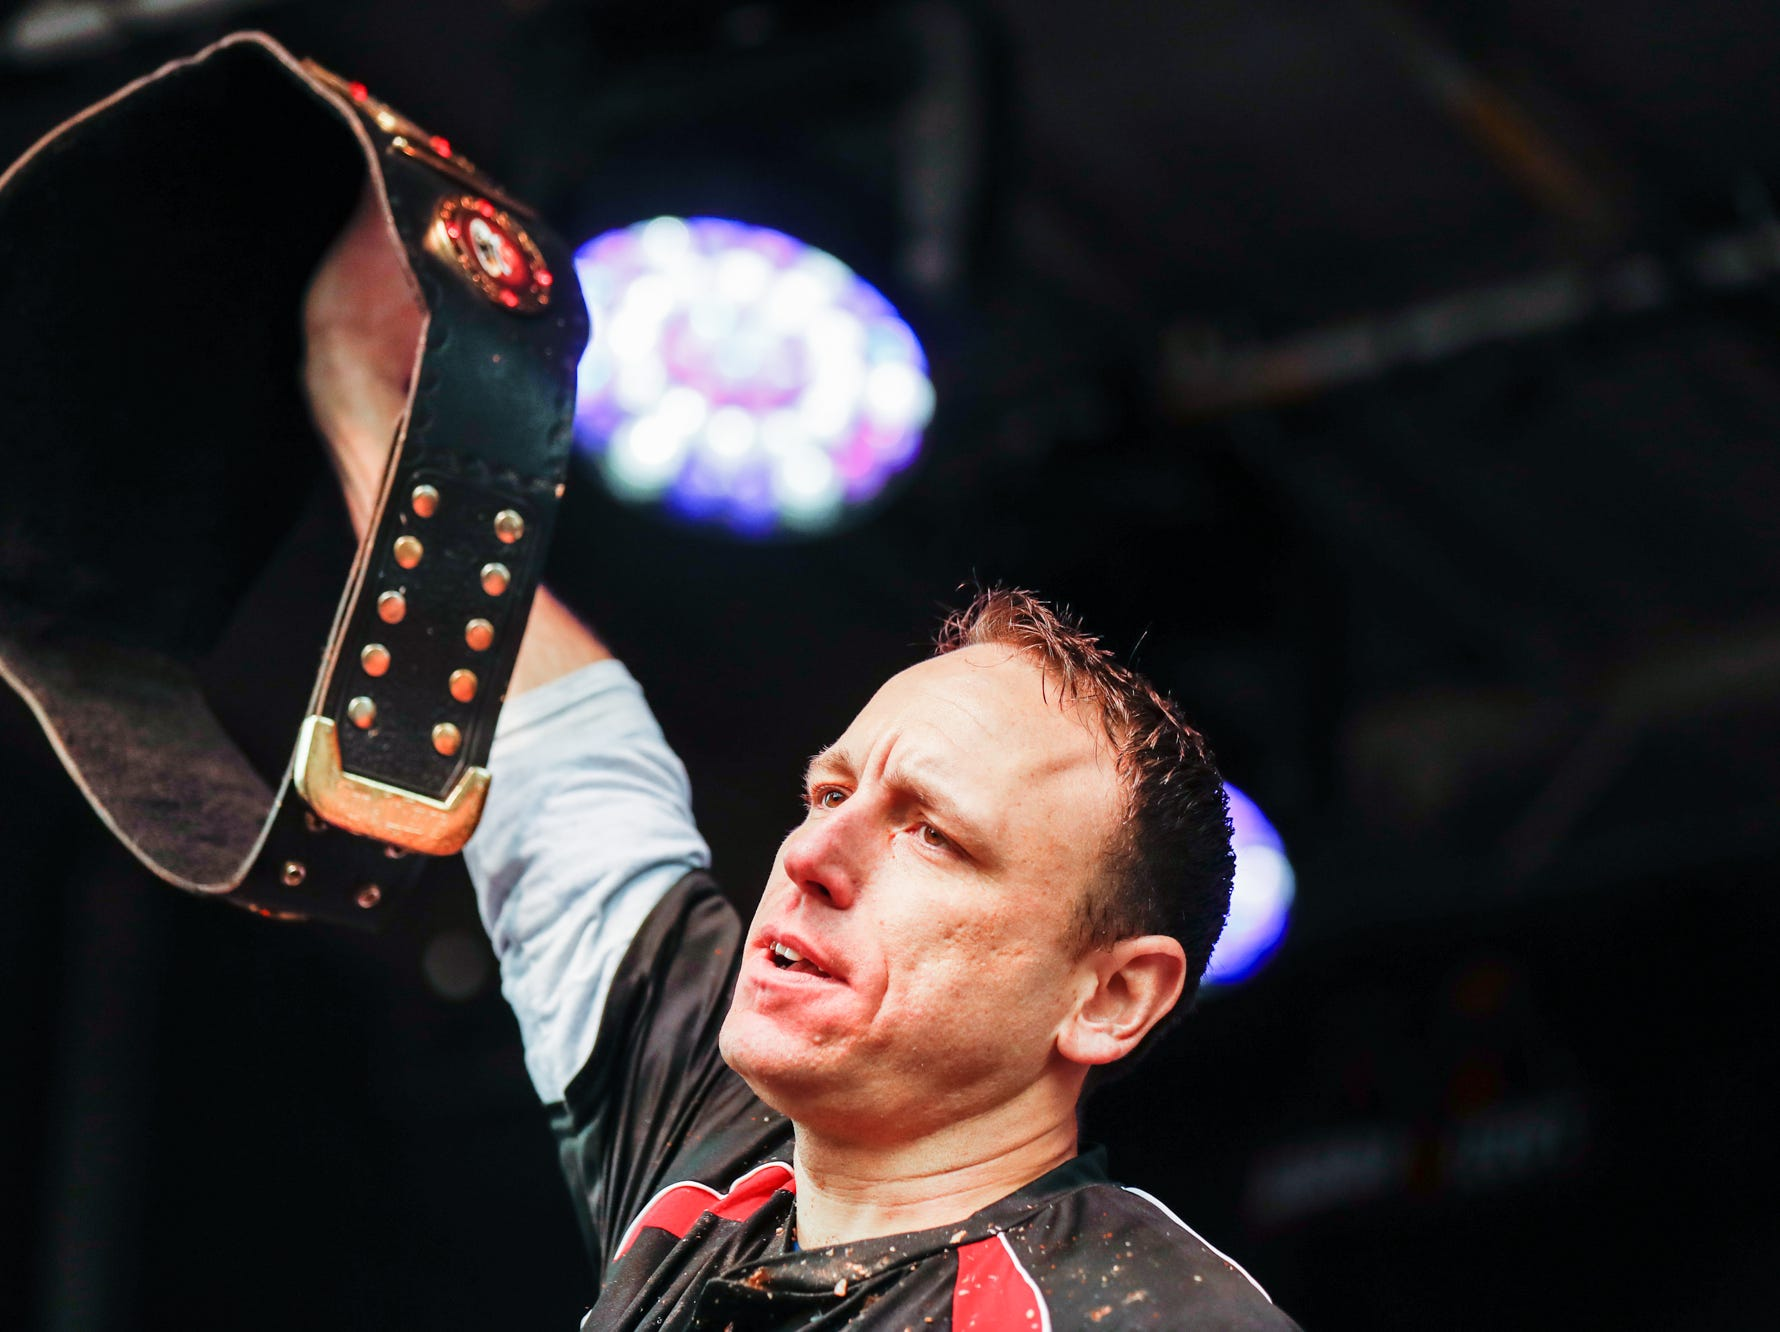 Joey Chestnut wins the sixth annual World Famous St. Elmo Shrimp Cocktail Eating Championship, held during the Meijer Tailgate Party on Georgia St. in Indianapolis on Saturday, Dec. 1, 2018. Chestnut set a new world record, eating  18 pounds and 9.6 ounces of St. Elmo Shrimp Cocktail in 8 minutes.